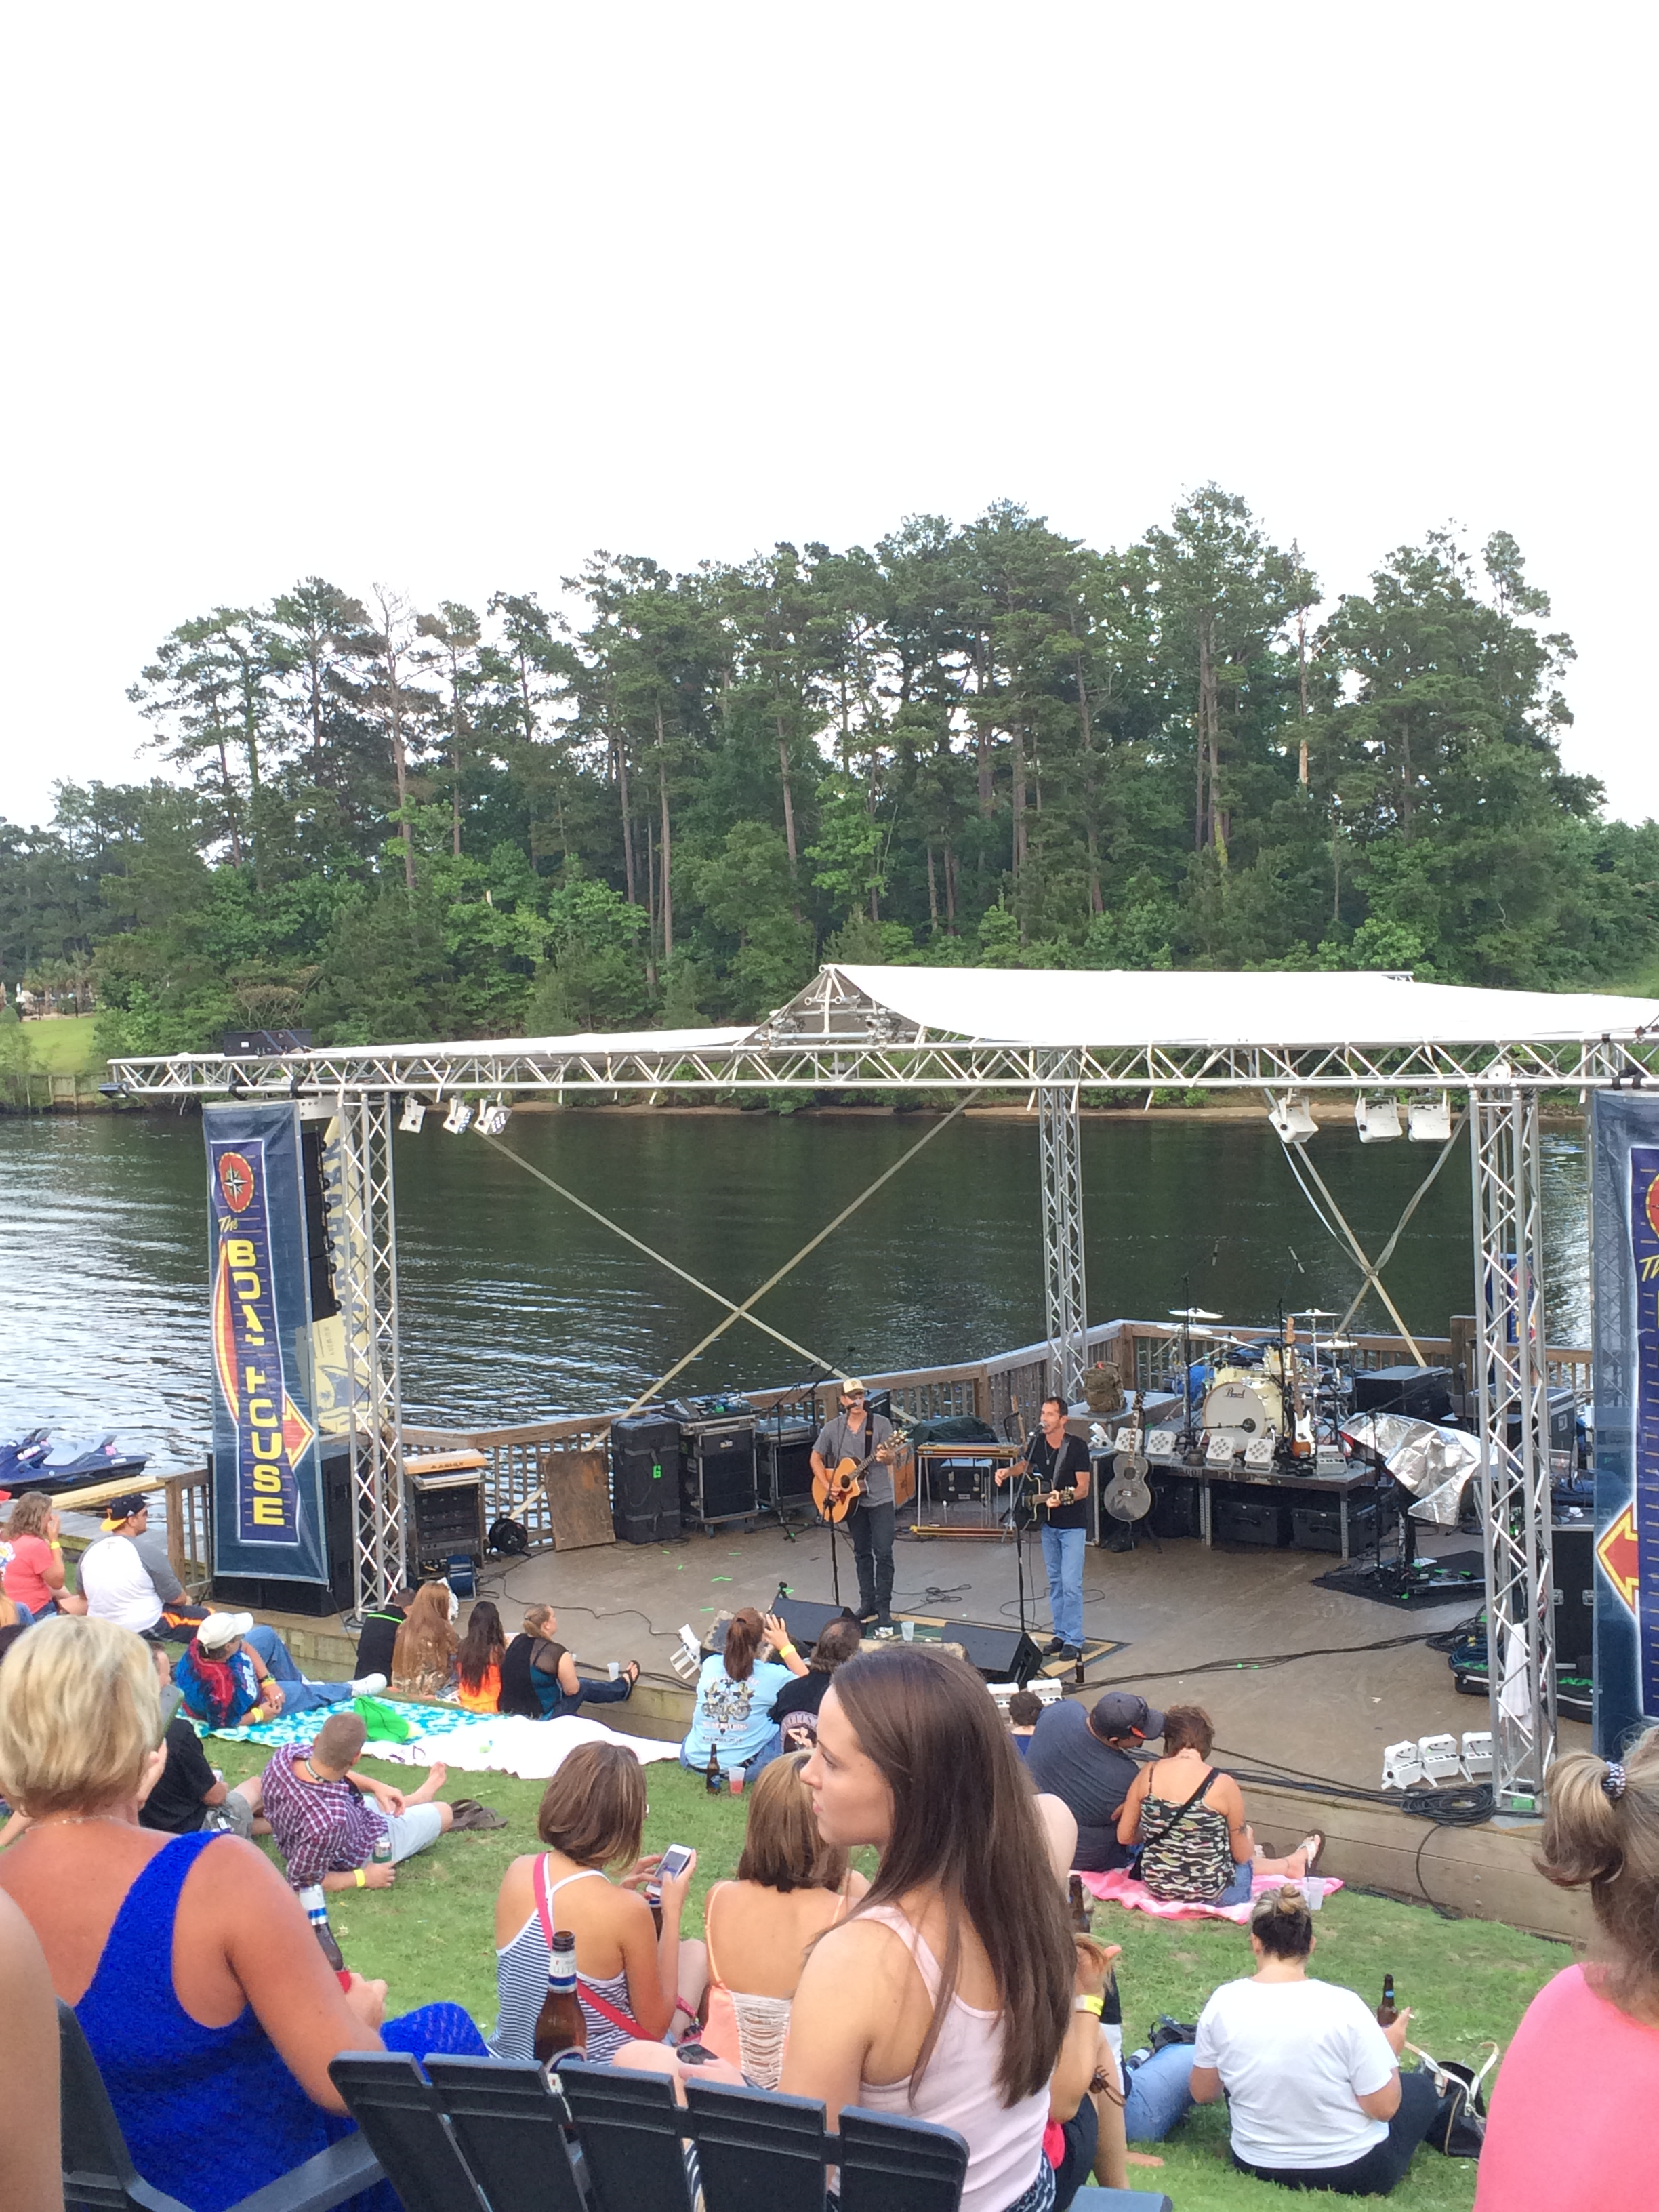 Before Joe Diffie took the Boathouse stage an opening band covered some current Top 40 country songs..